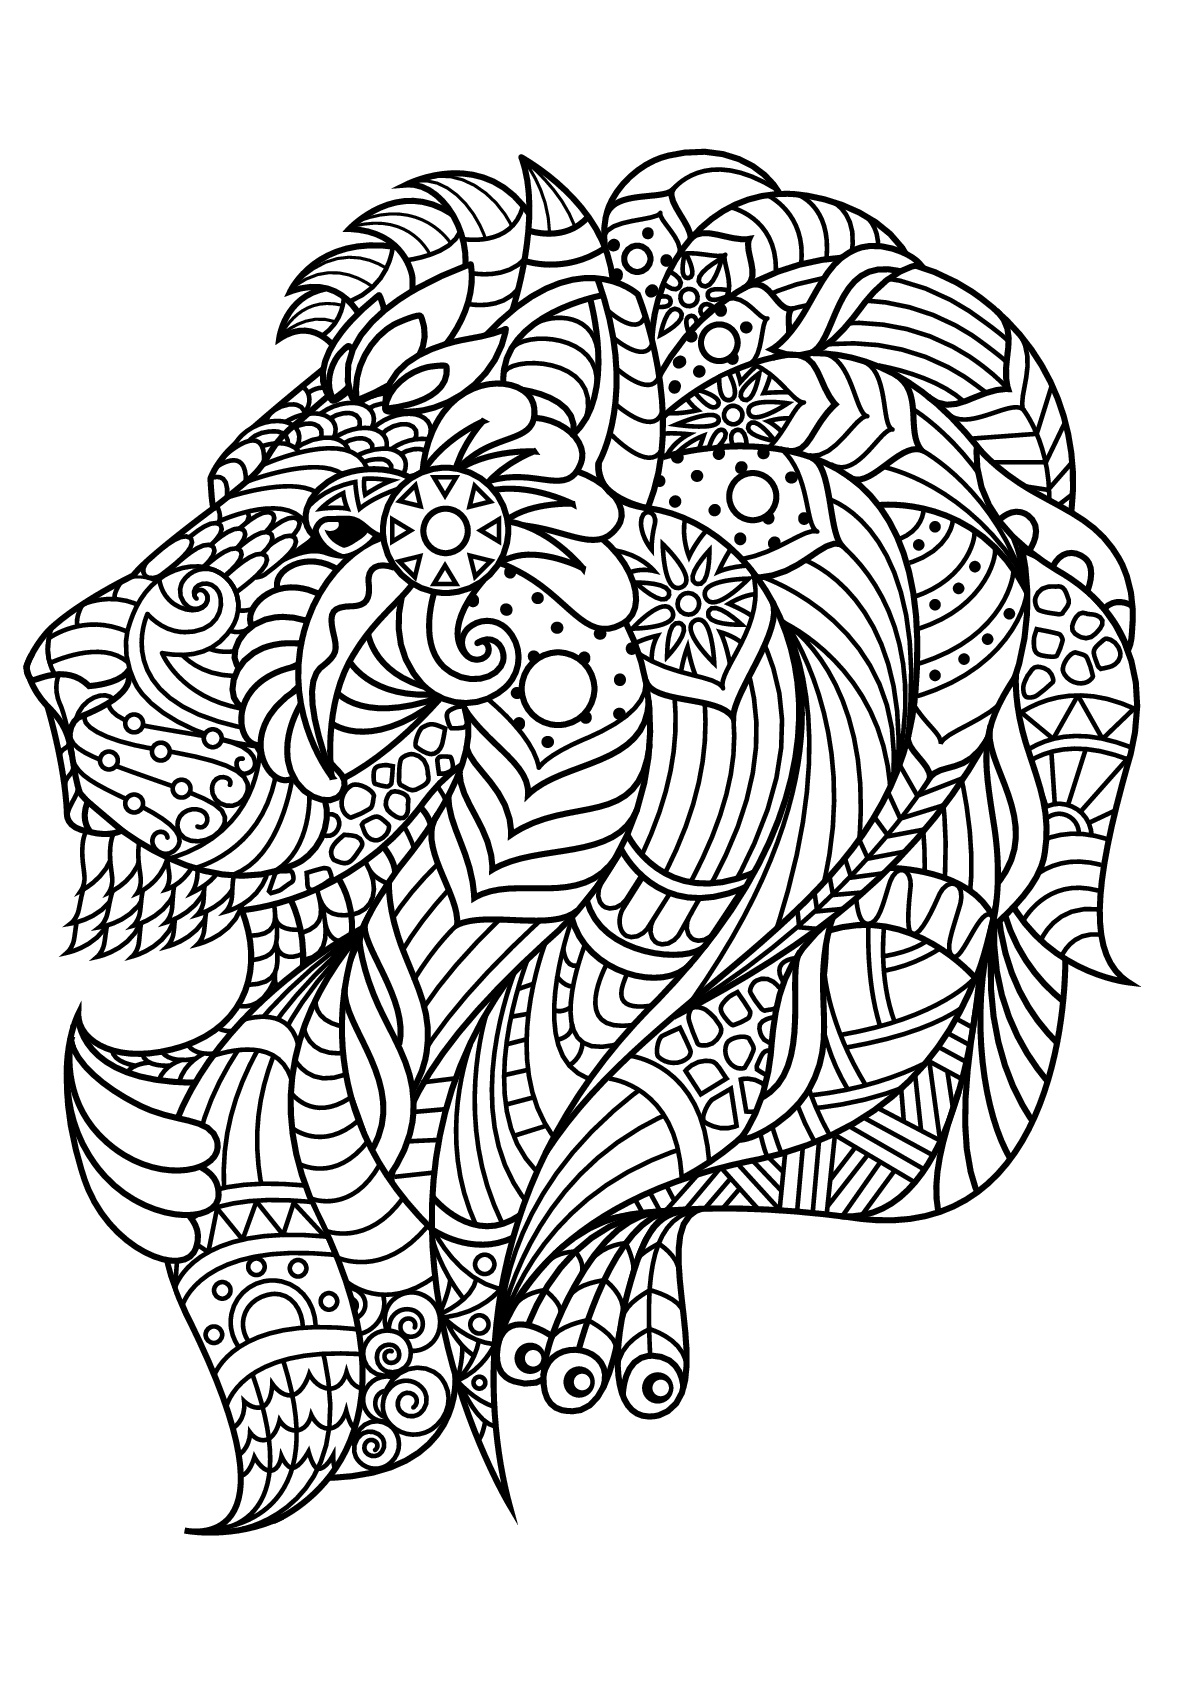 lion printable tribal animal coloring pages at getcoloringscom free lion printable